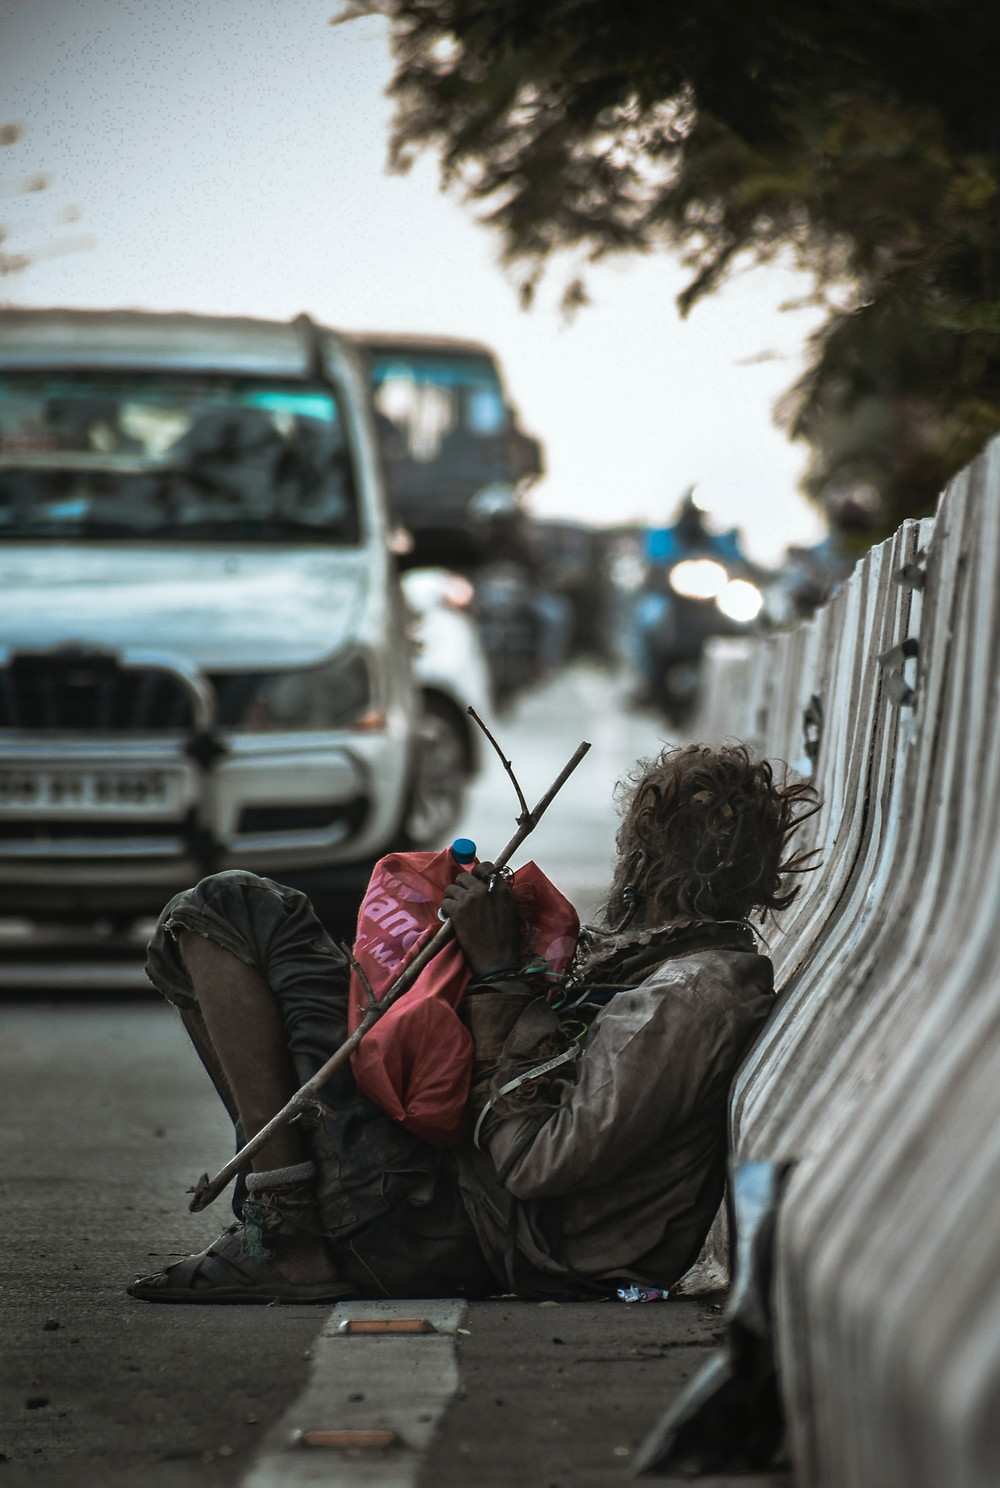 Homeless man leaning up against the side of the road